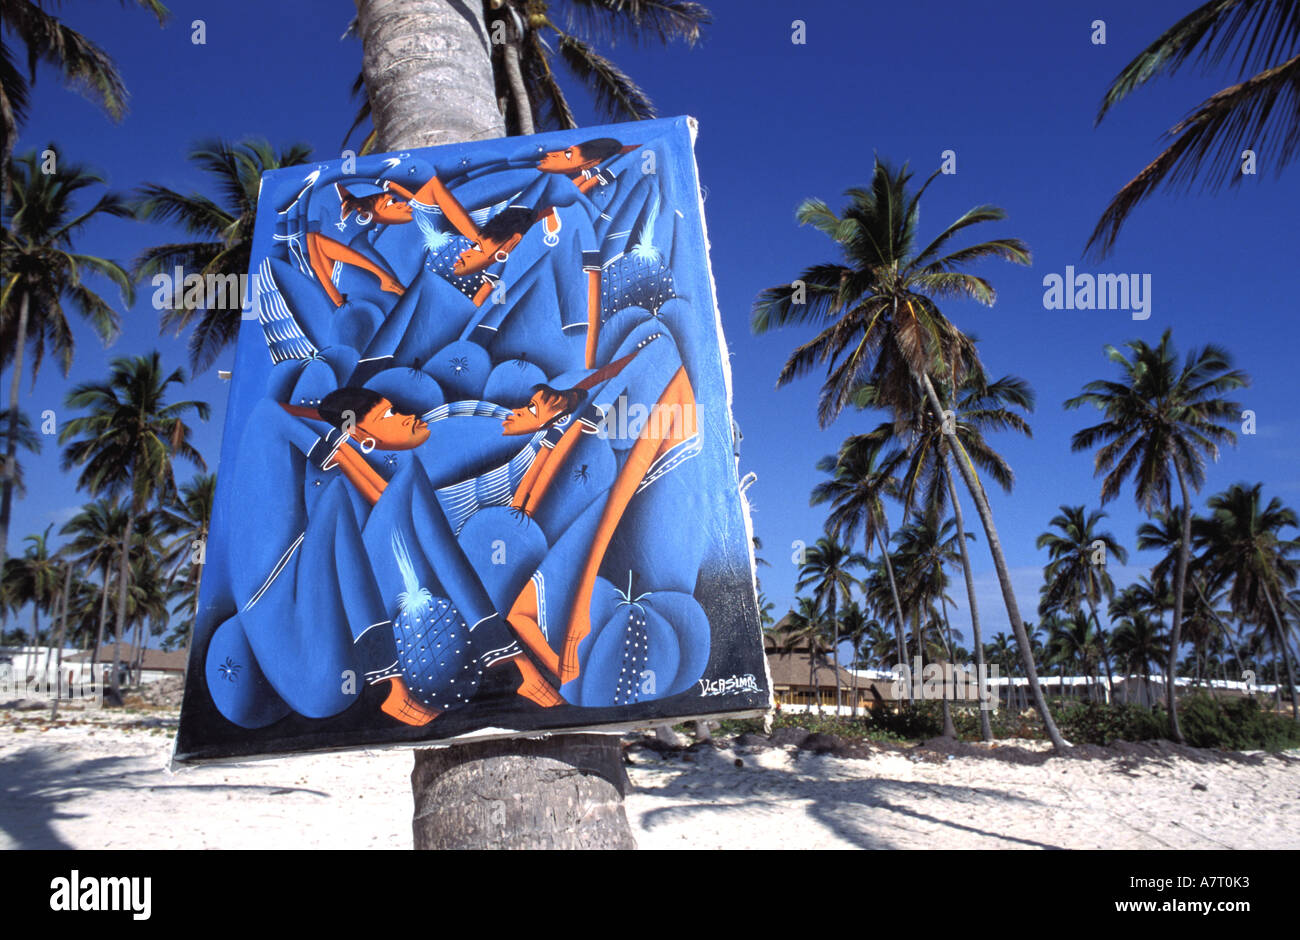 Dominican Republic, Punta Cana, the coconut coast, naive painting on the beach of Playa Bavaro - Stock Image